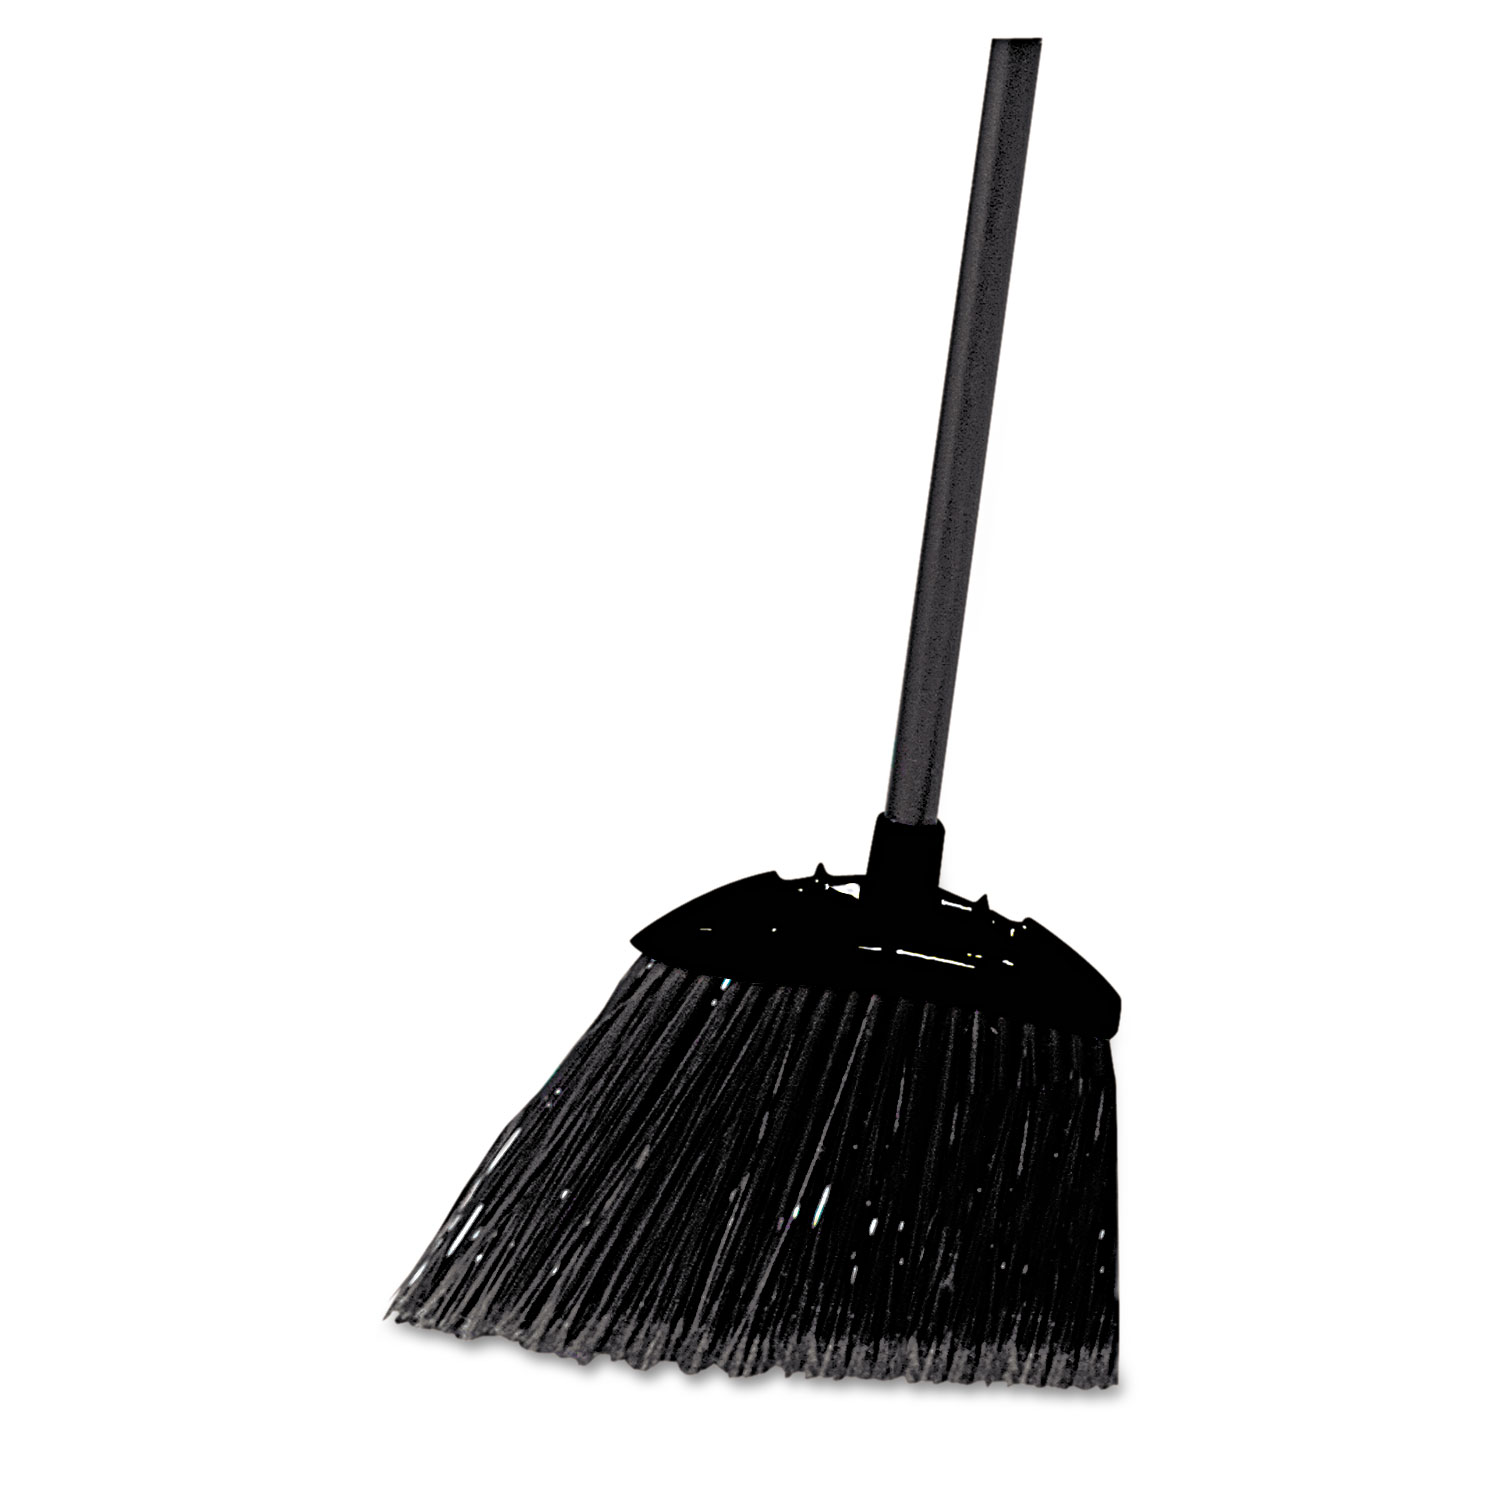 "Lobby Pro Broom, Poly Bristles, 35"", with Metal Handle, Black"